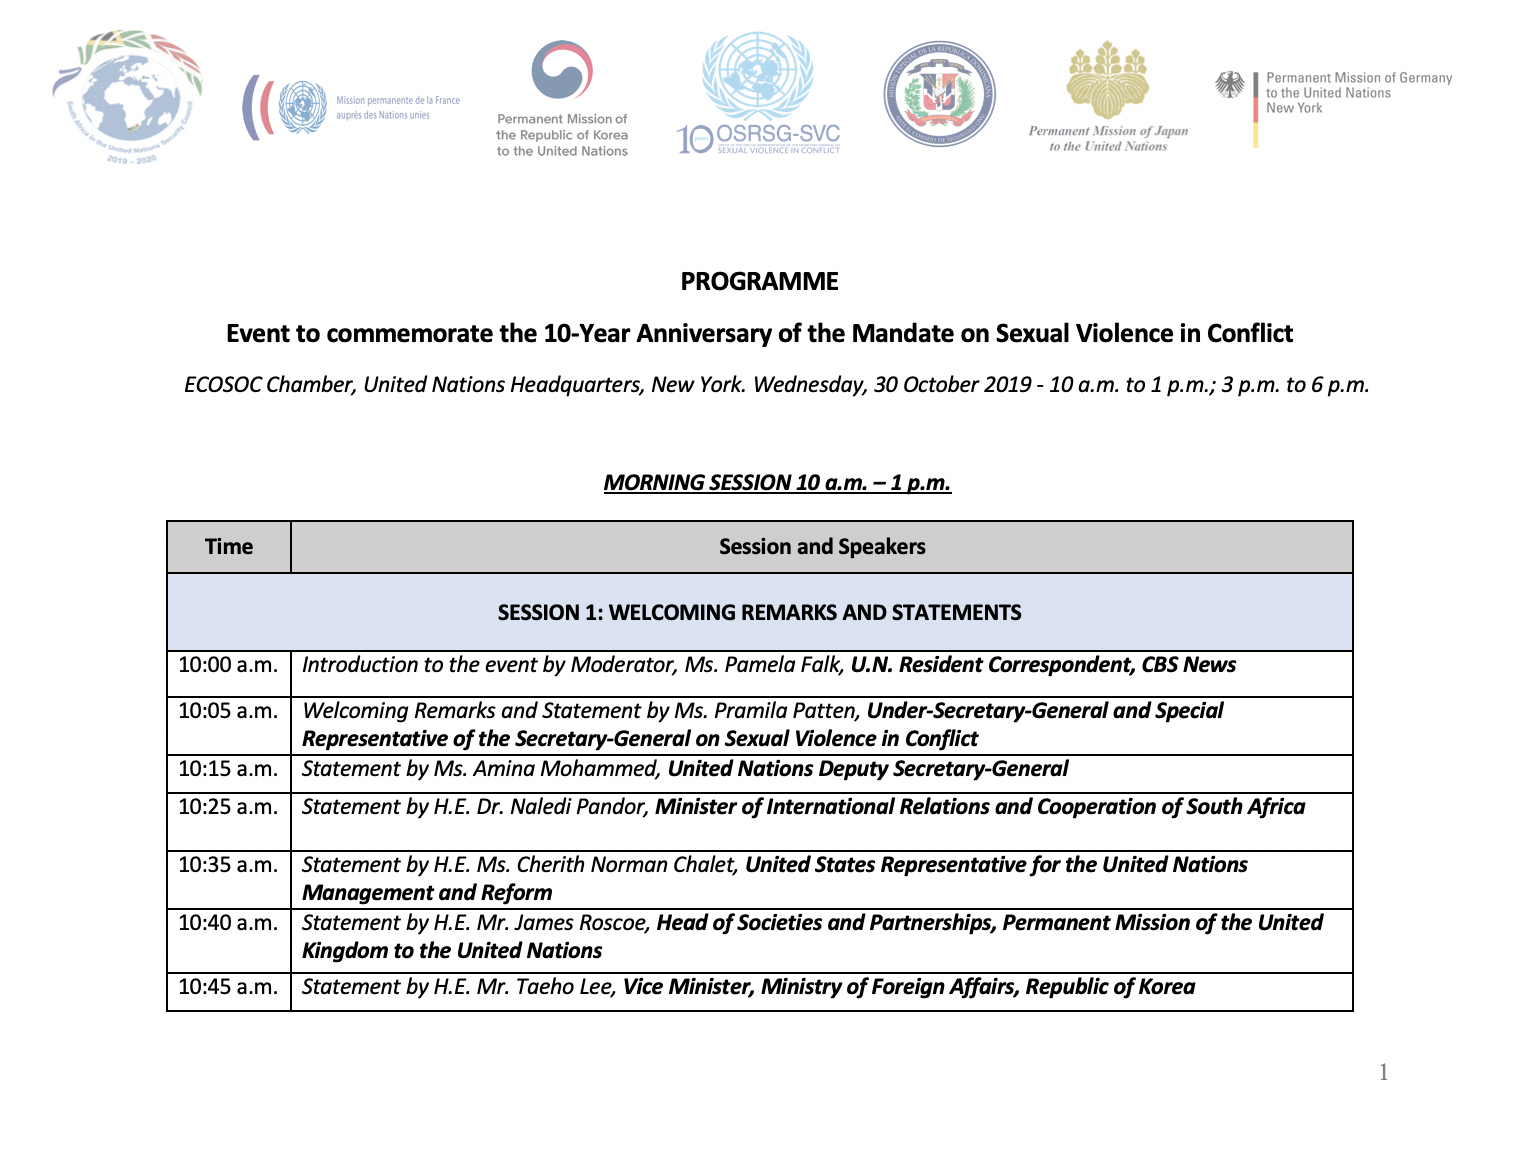 Programme of the Event to commemorate the 10-Year Anniversary of the Mandate on Sexual Violence in Conflict